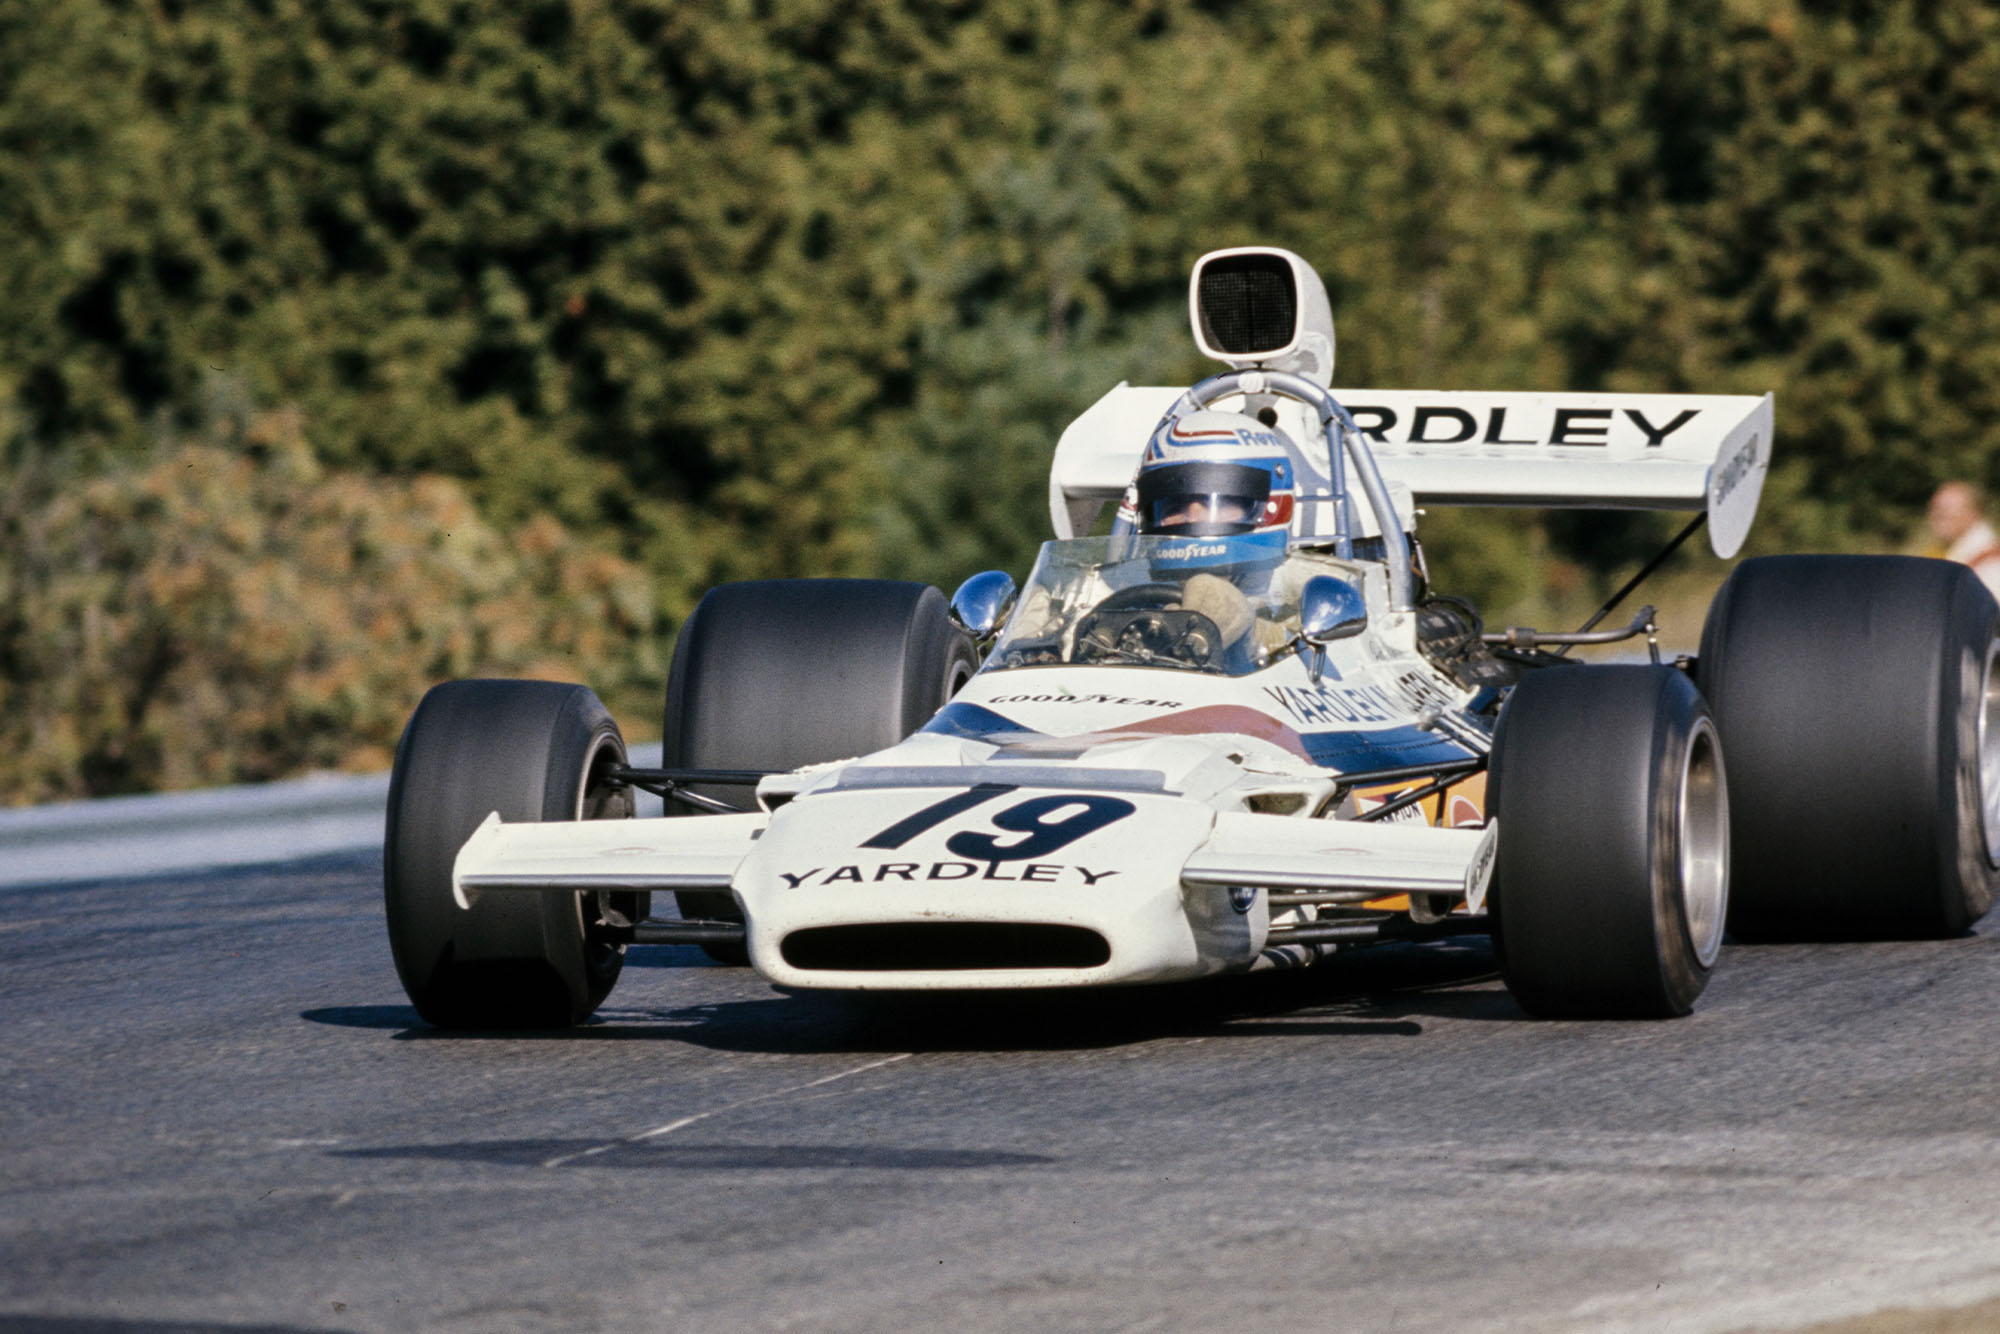 Peter Revson driving for McLare ta the 1972 Canadian Grand Prix.